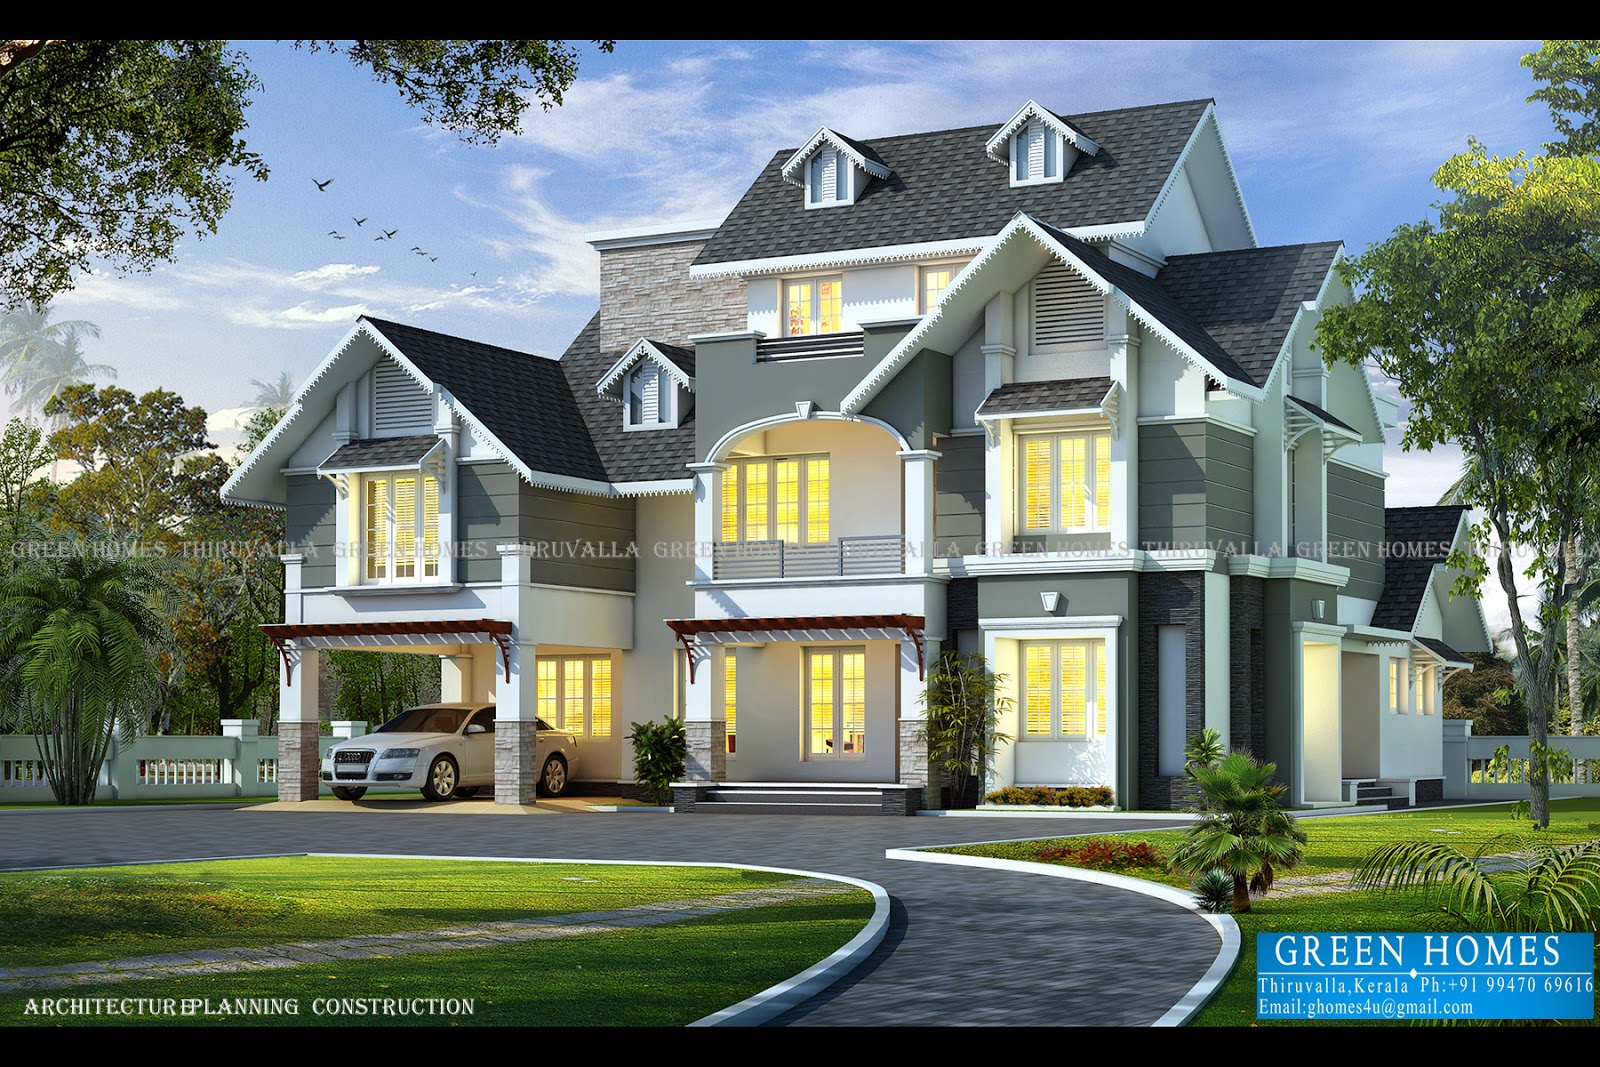 Green homes awesome european style house in 3650 sq feet for Home designs kerala architects